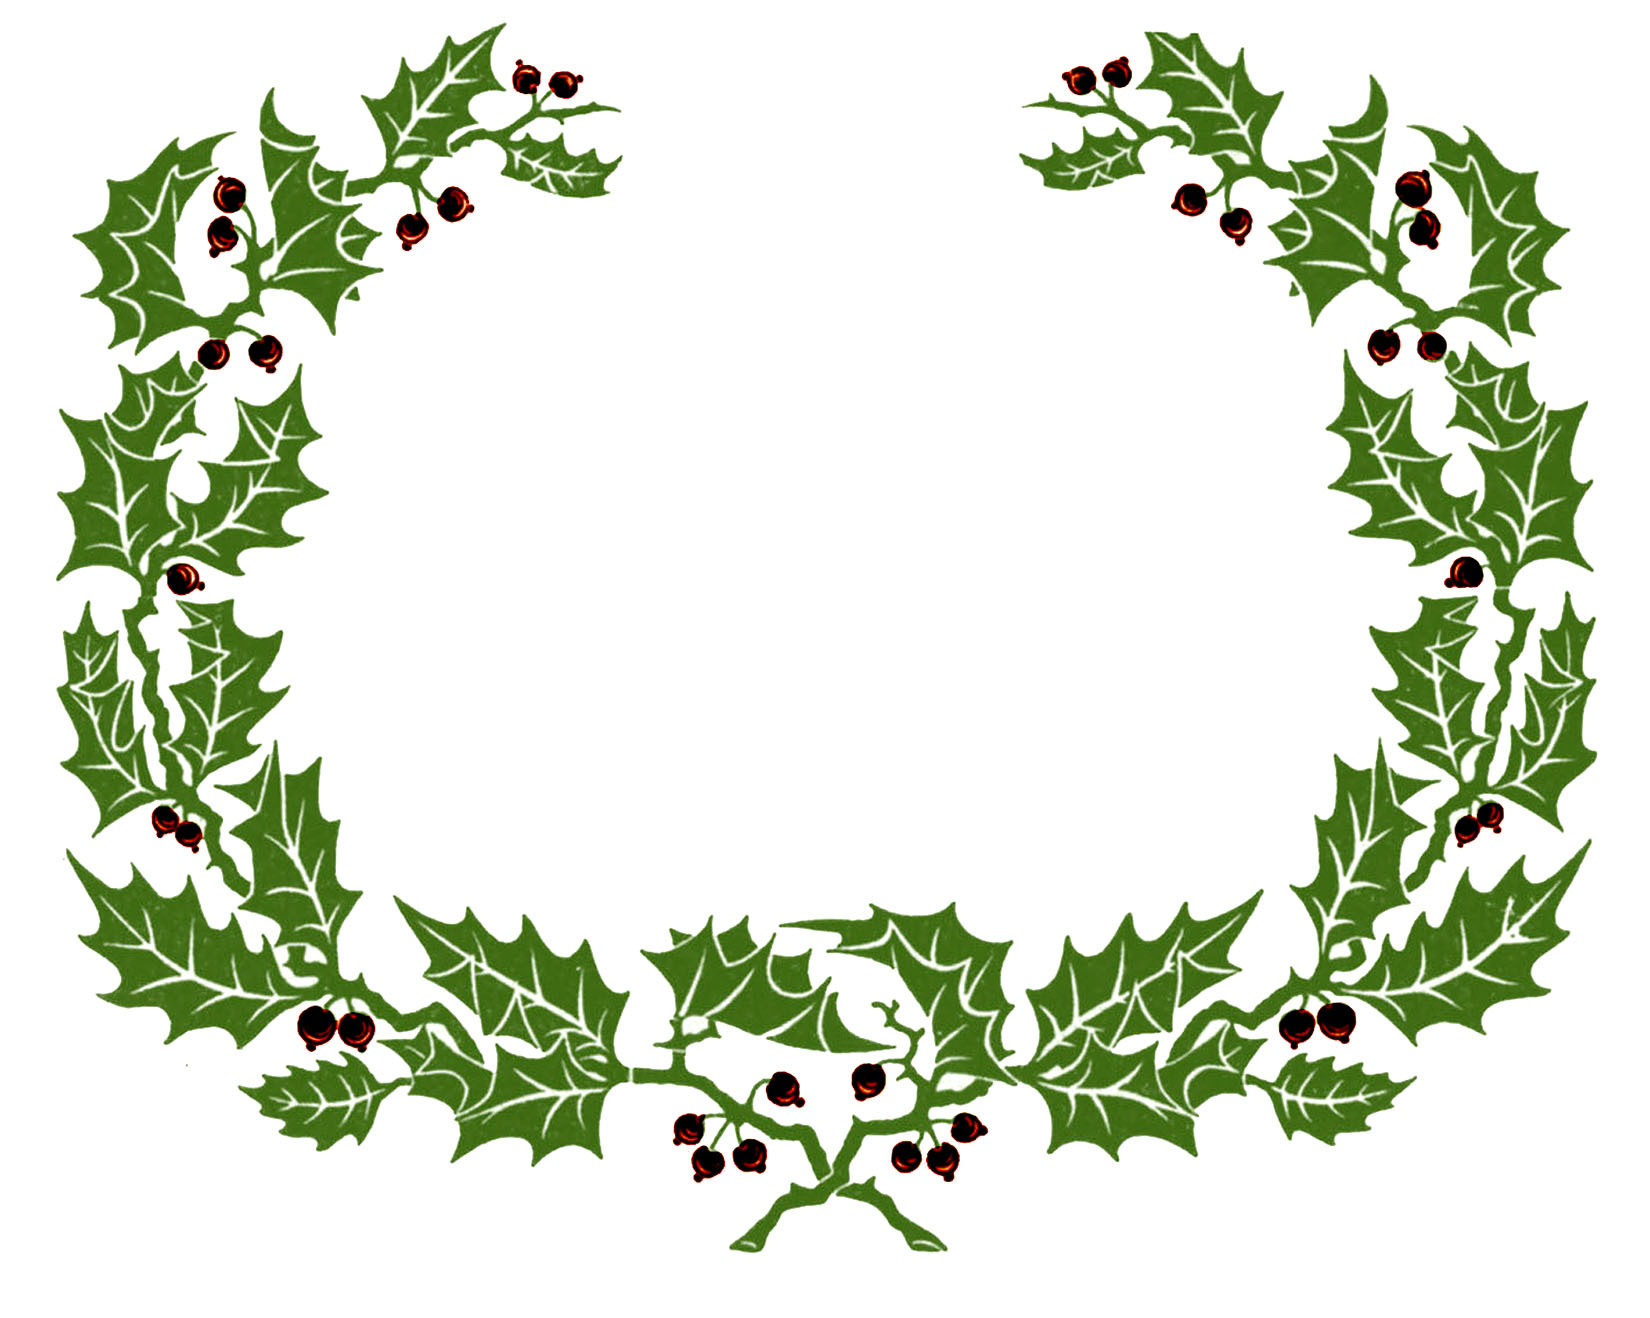 12 Christmas Wreath Frame Images.